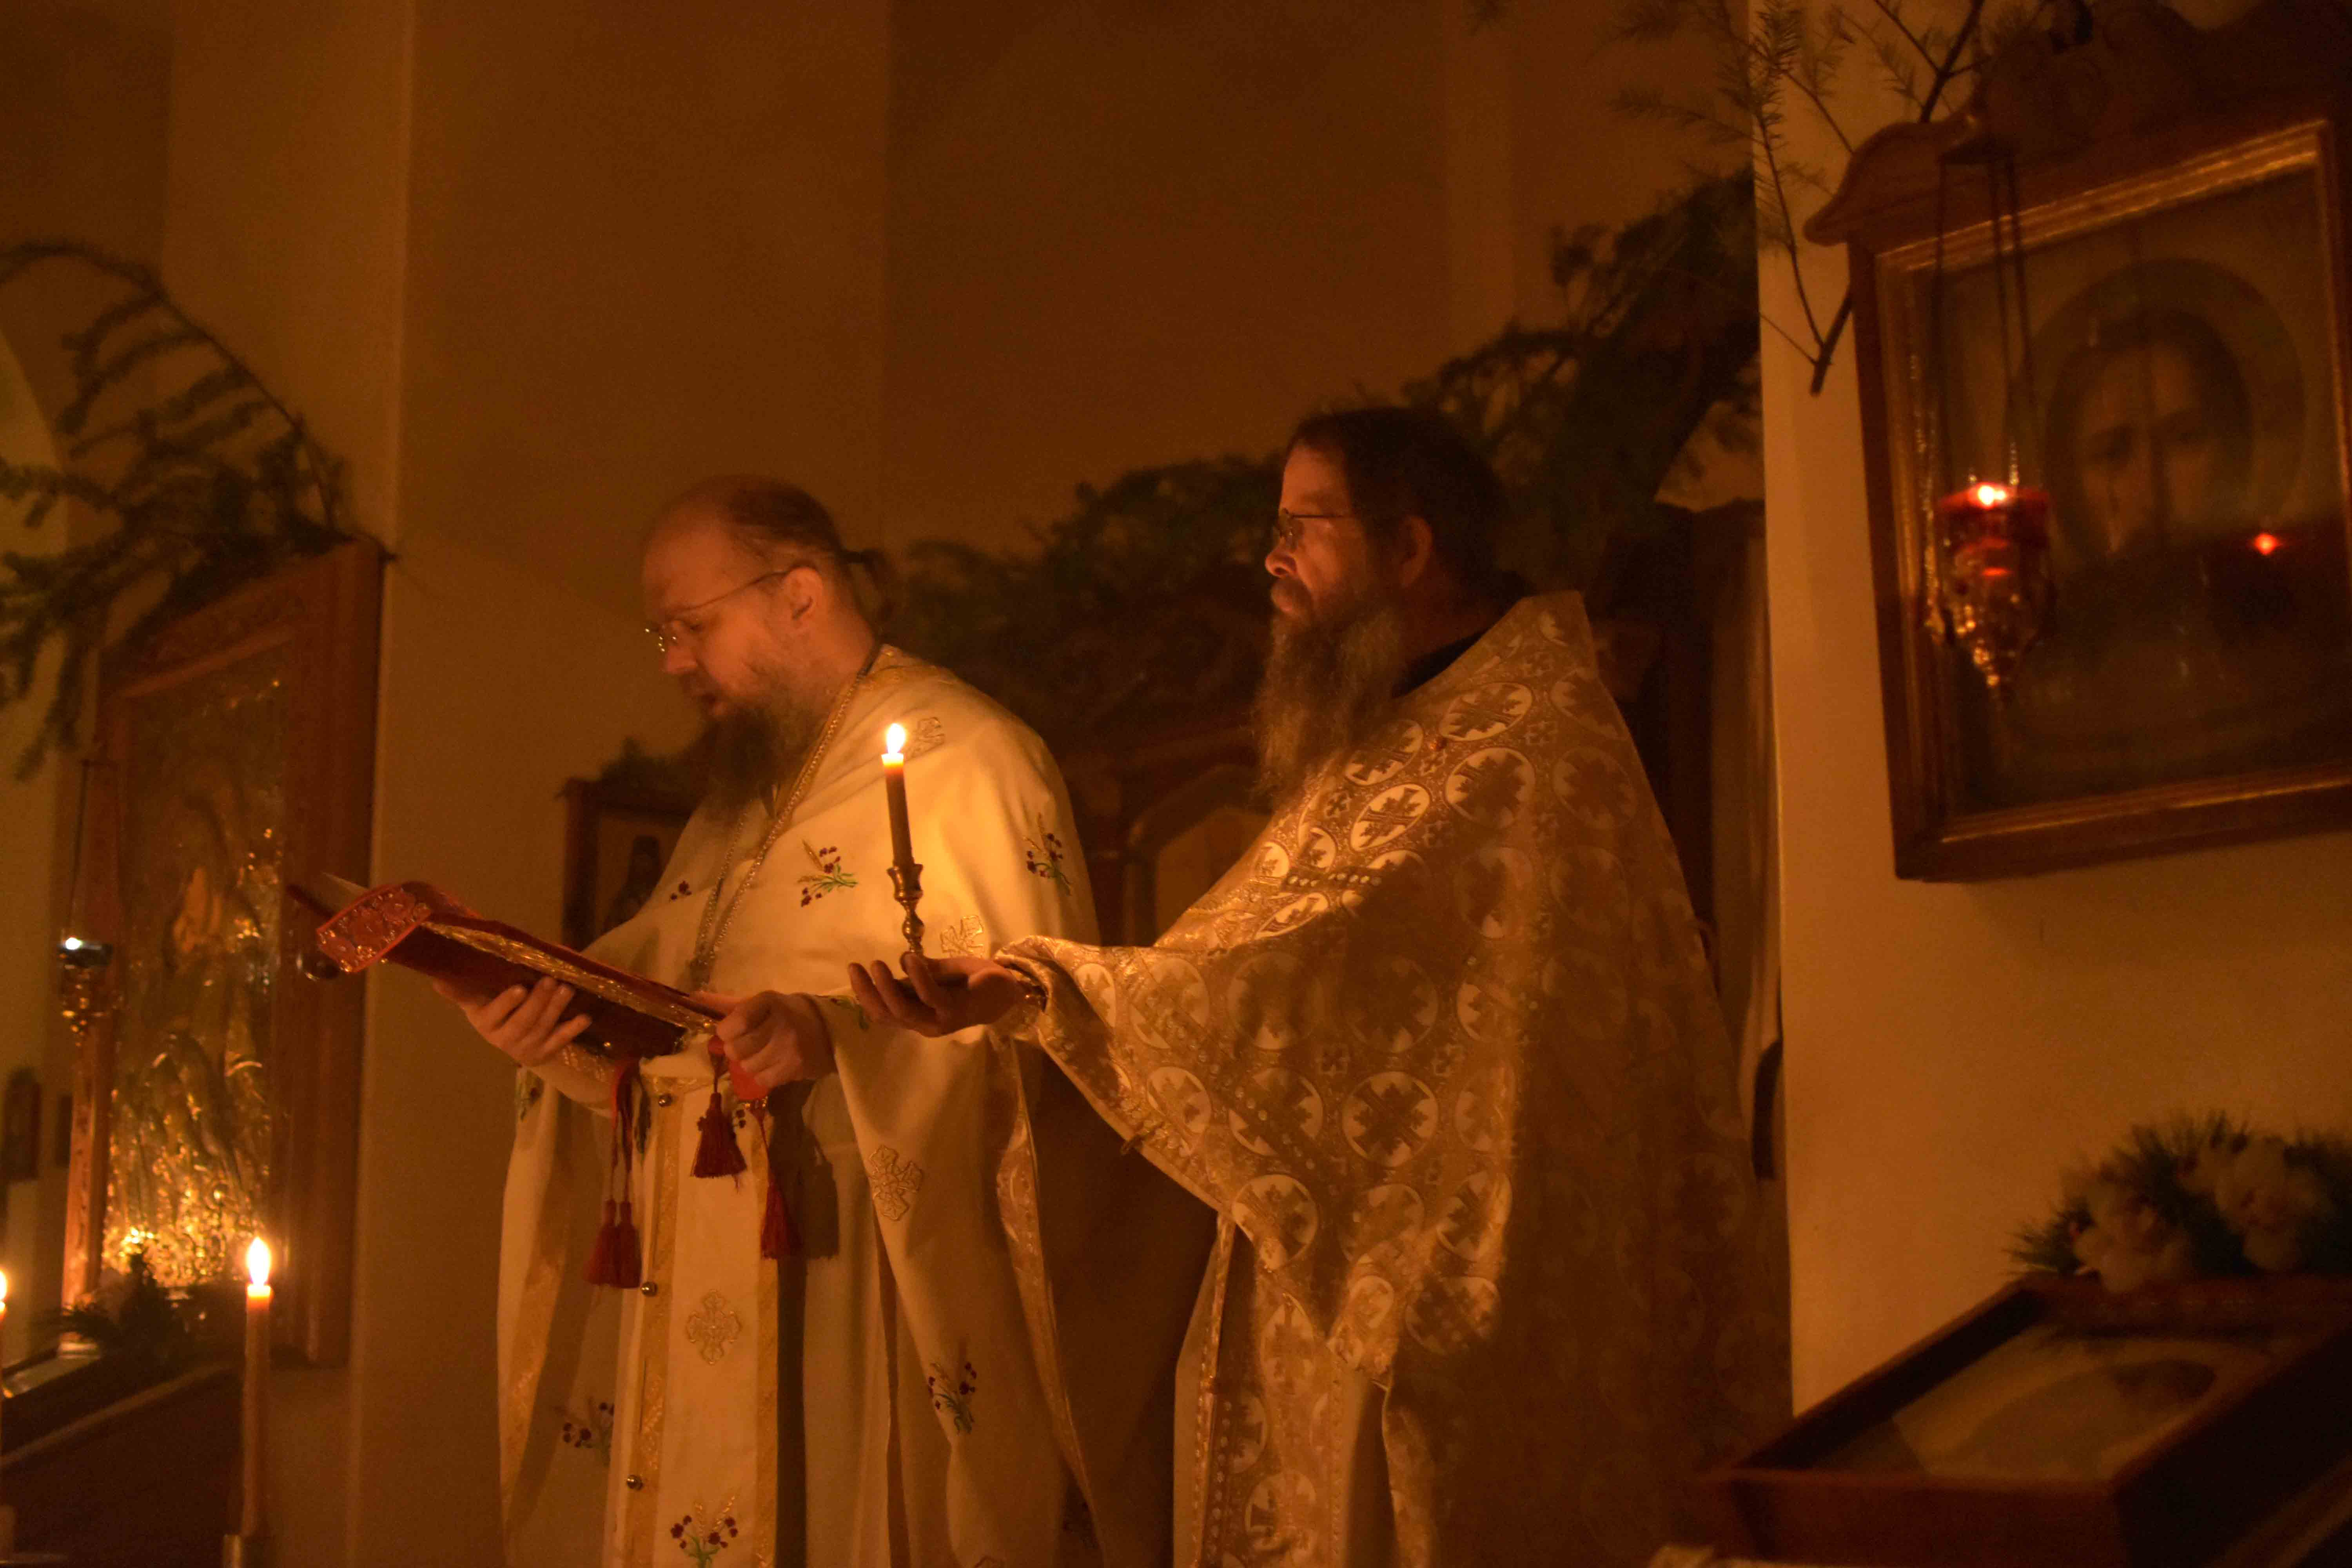 Reading the Holy Gospel during the Nativity Liturgy.